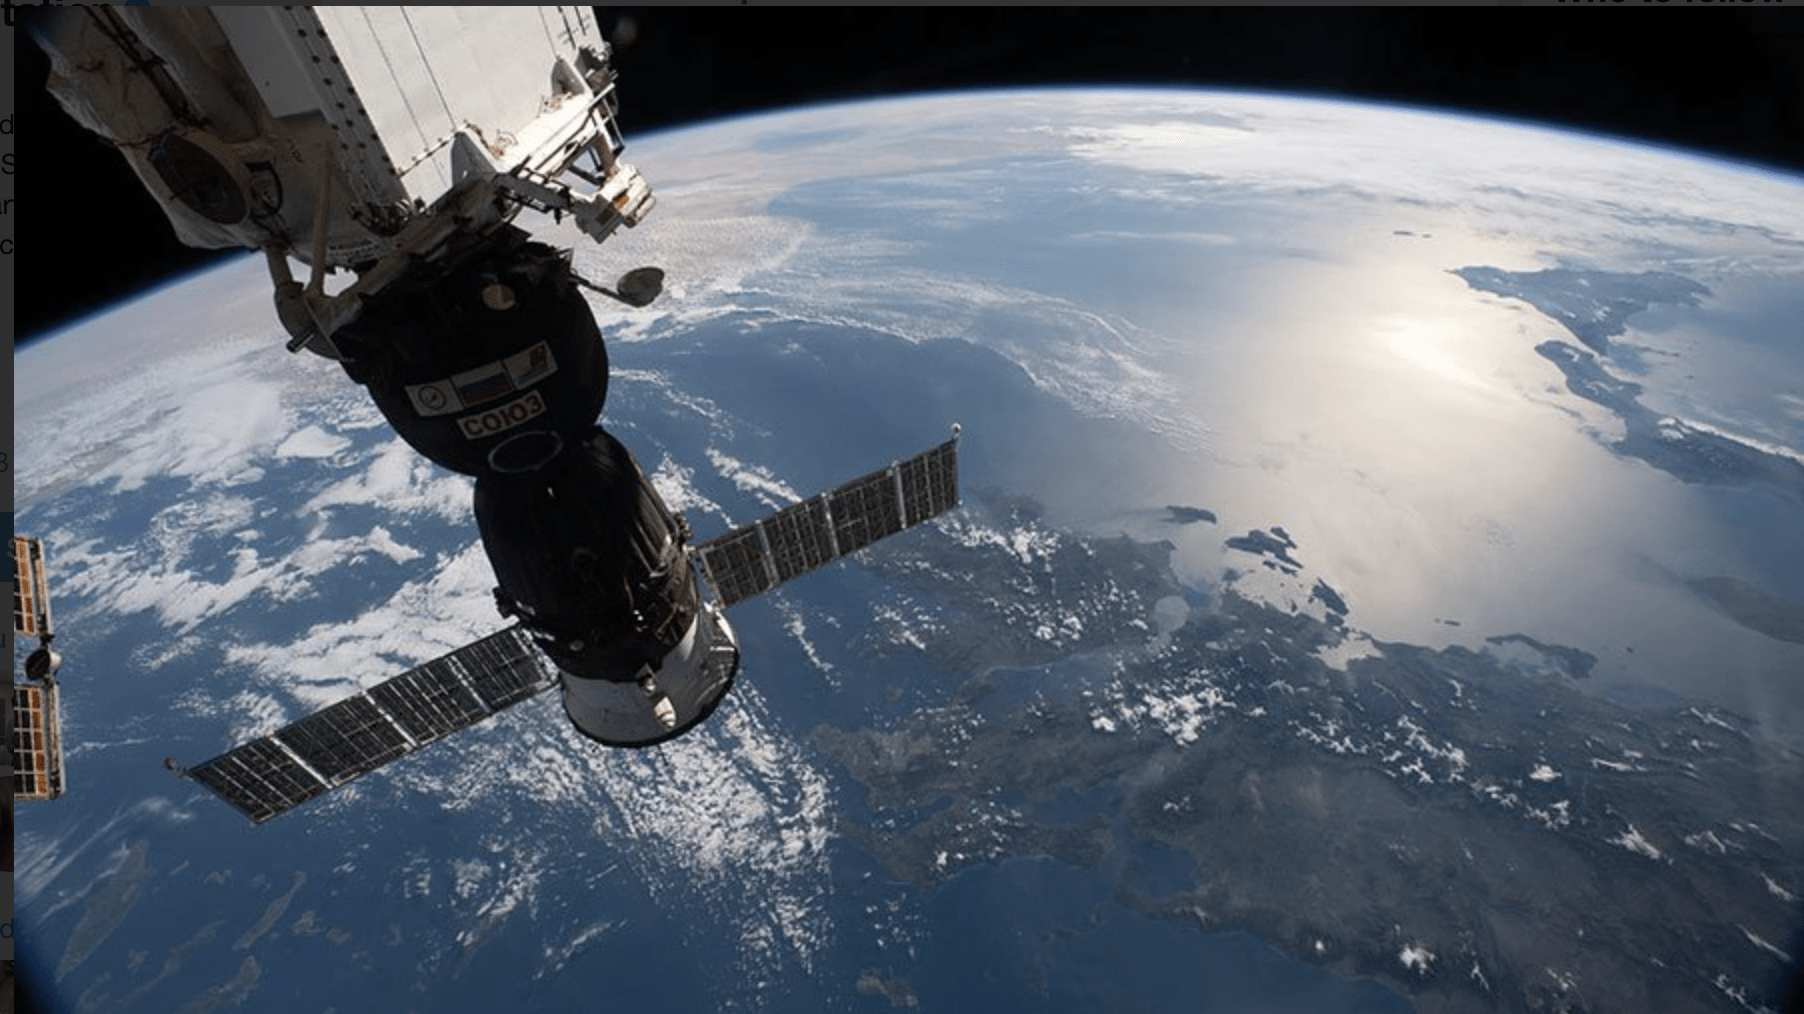 NASA Opens International Space Station to Tourism, Commercial Use